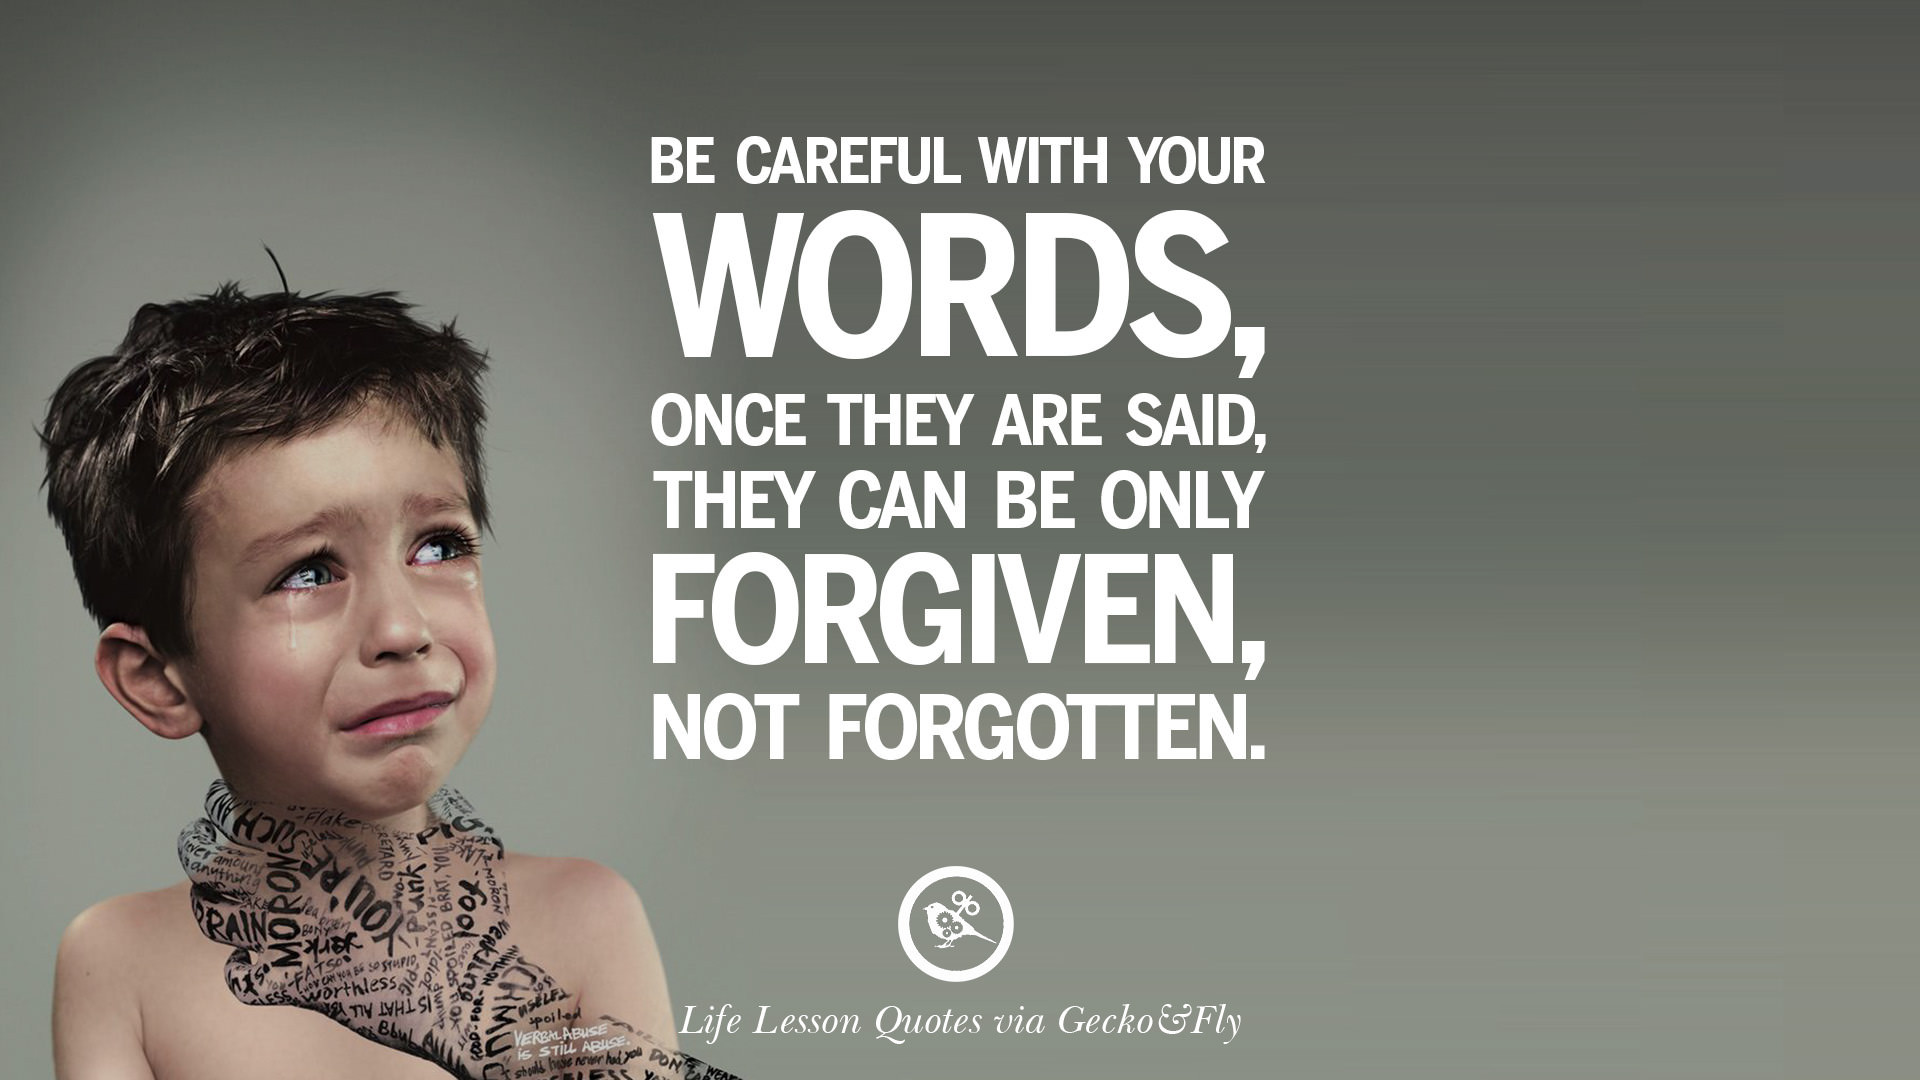 Quotes On Lifes Lessons  15 Important Inspirational Quotes Life Lessons And